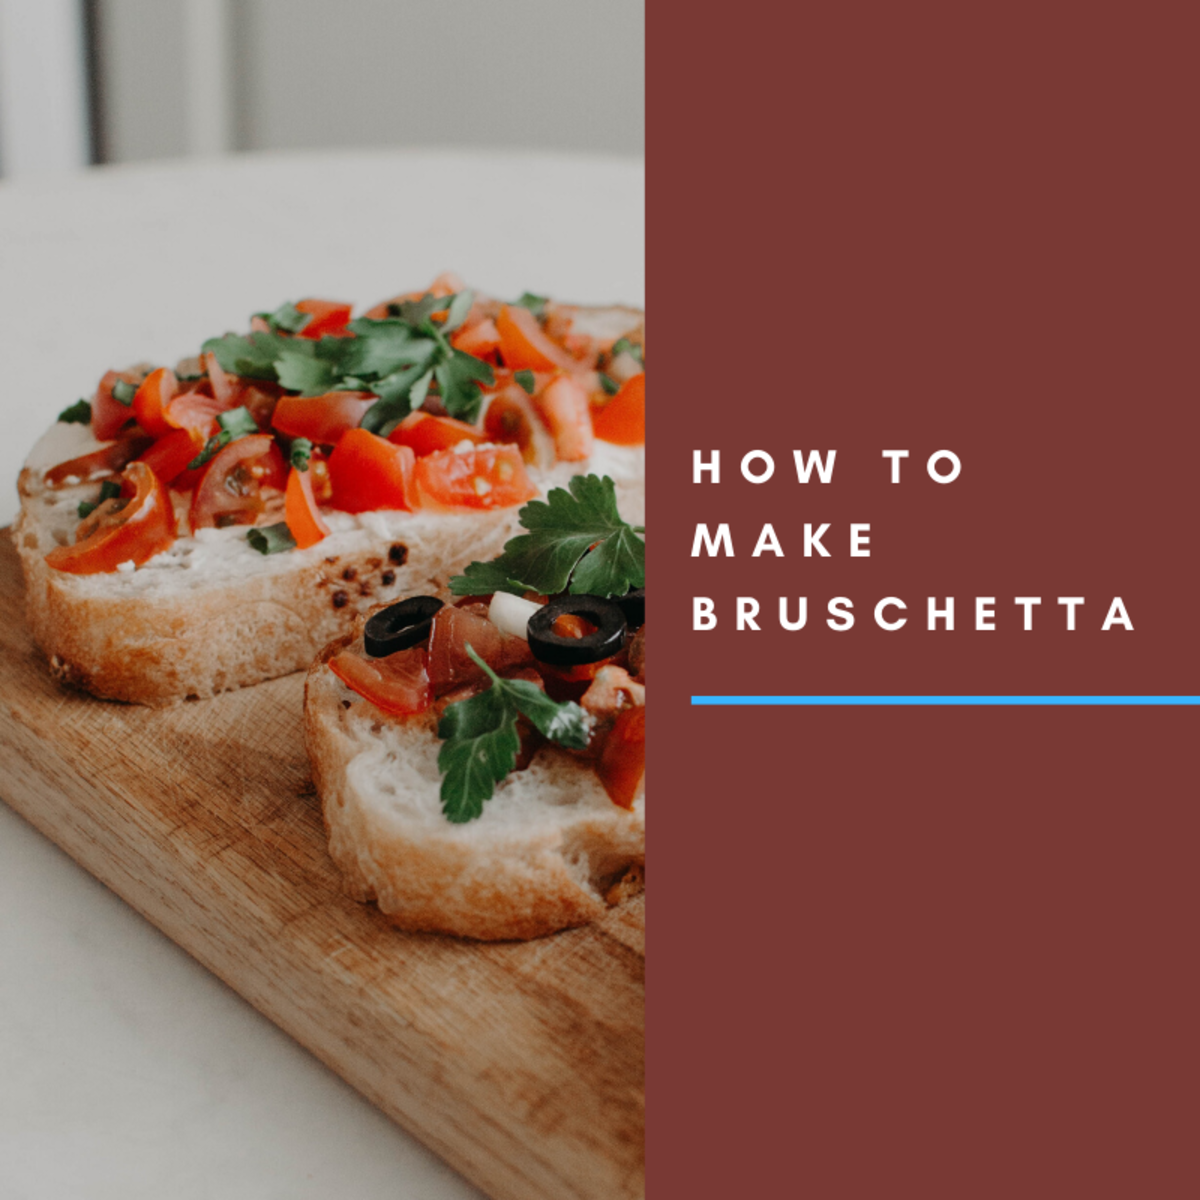 Bruschetta is a delicious appetizer that's great for many meals.